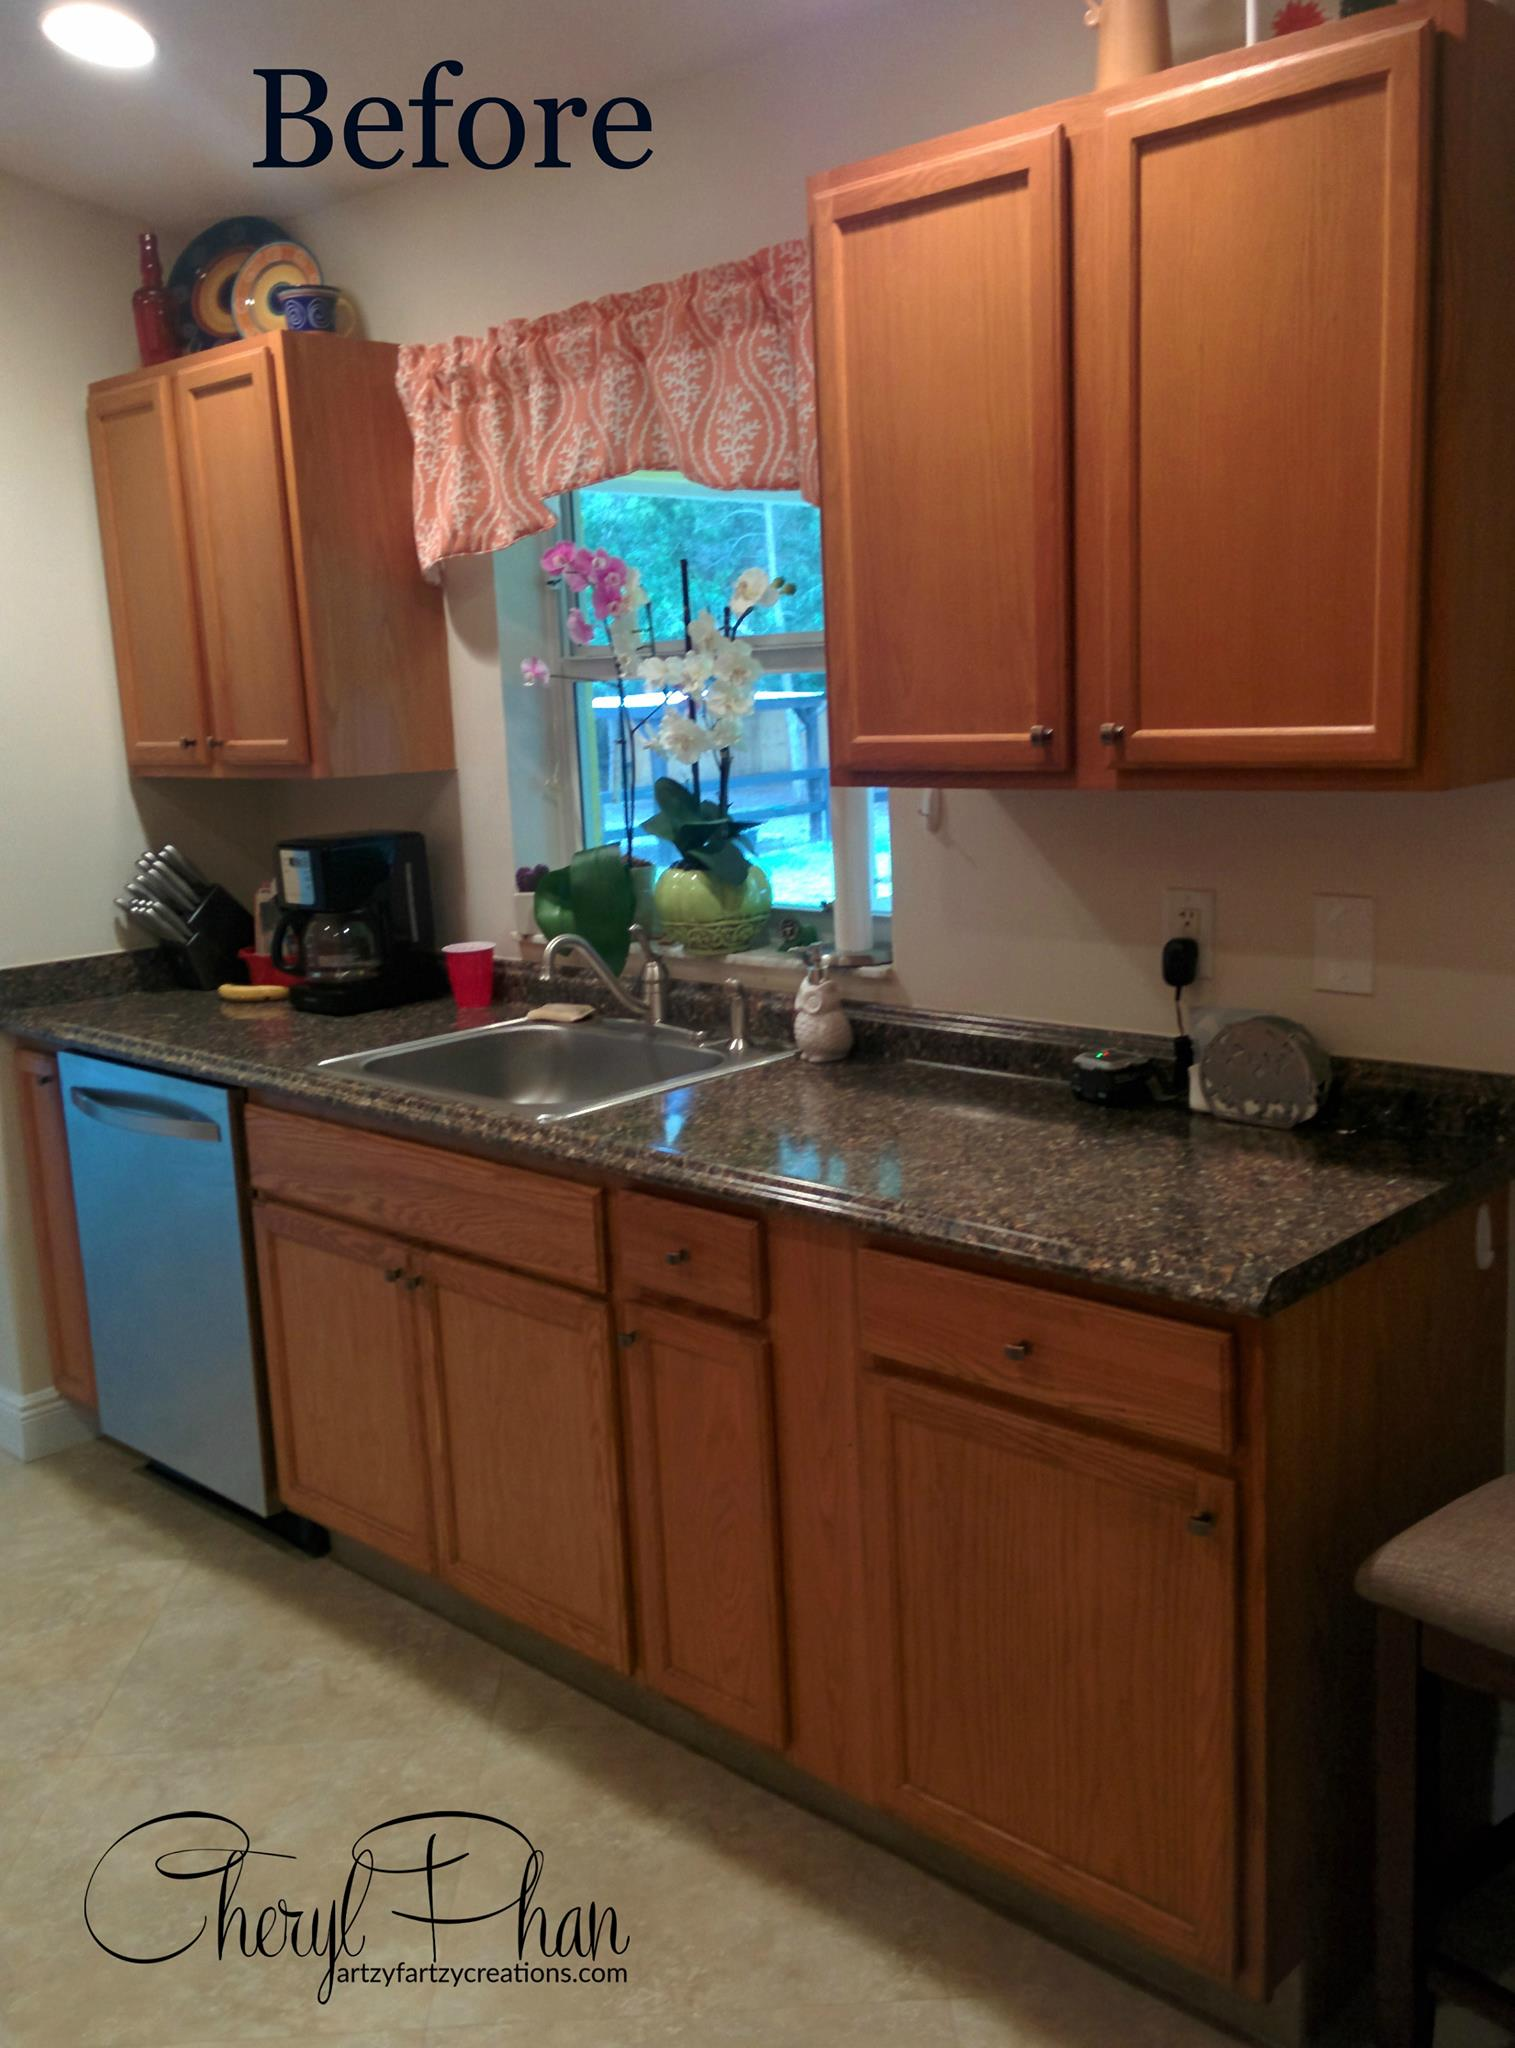 I Think The Gest Reason For White Cabinets Is It S Much Er To Paint Your Existing Than Replace Them Or Use Faux Wood If